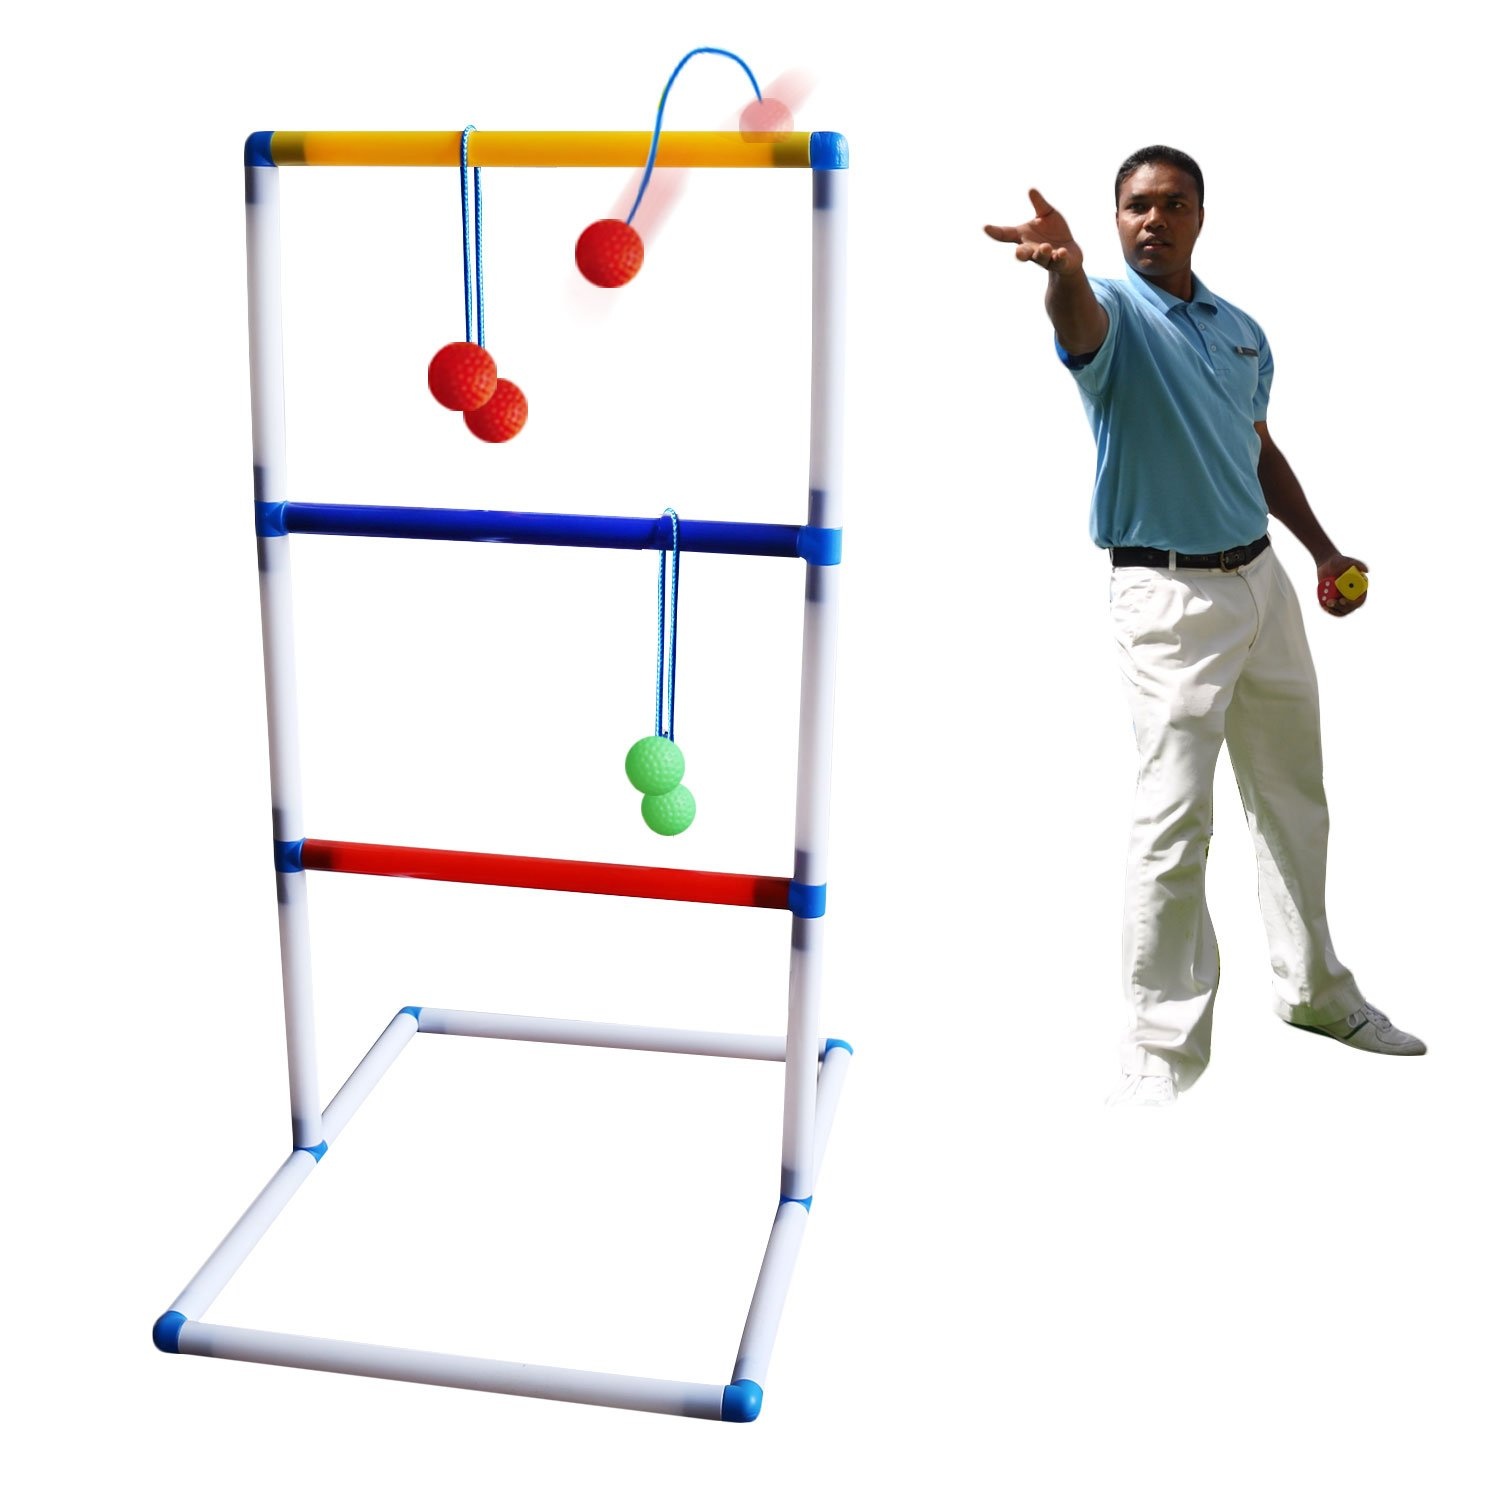 Freshday Ladder Toss Ball Game Set, One Piece Game Set for Adults & Kids, for Backyard, Beach, Lawn, Pool, Camping